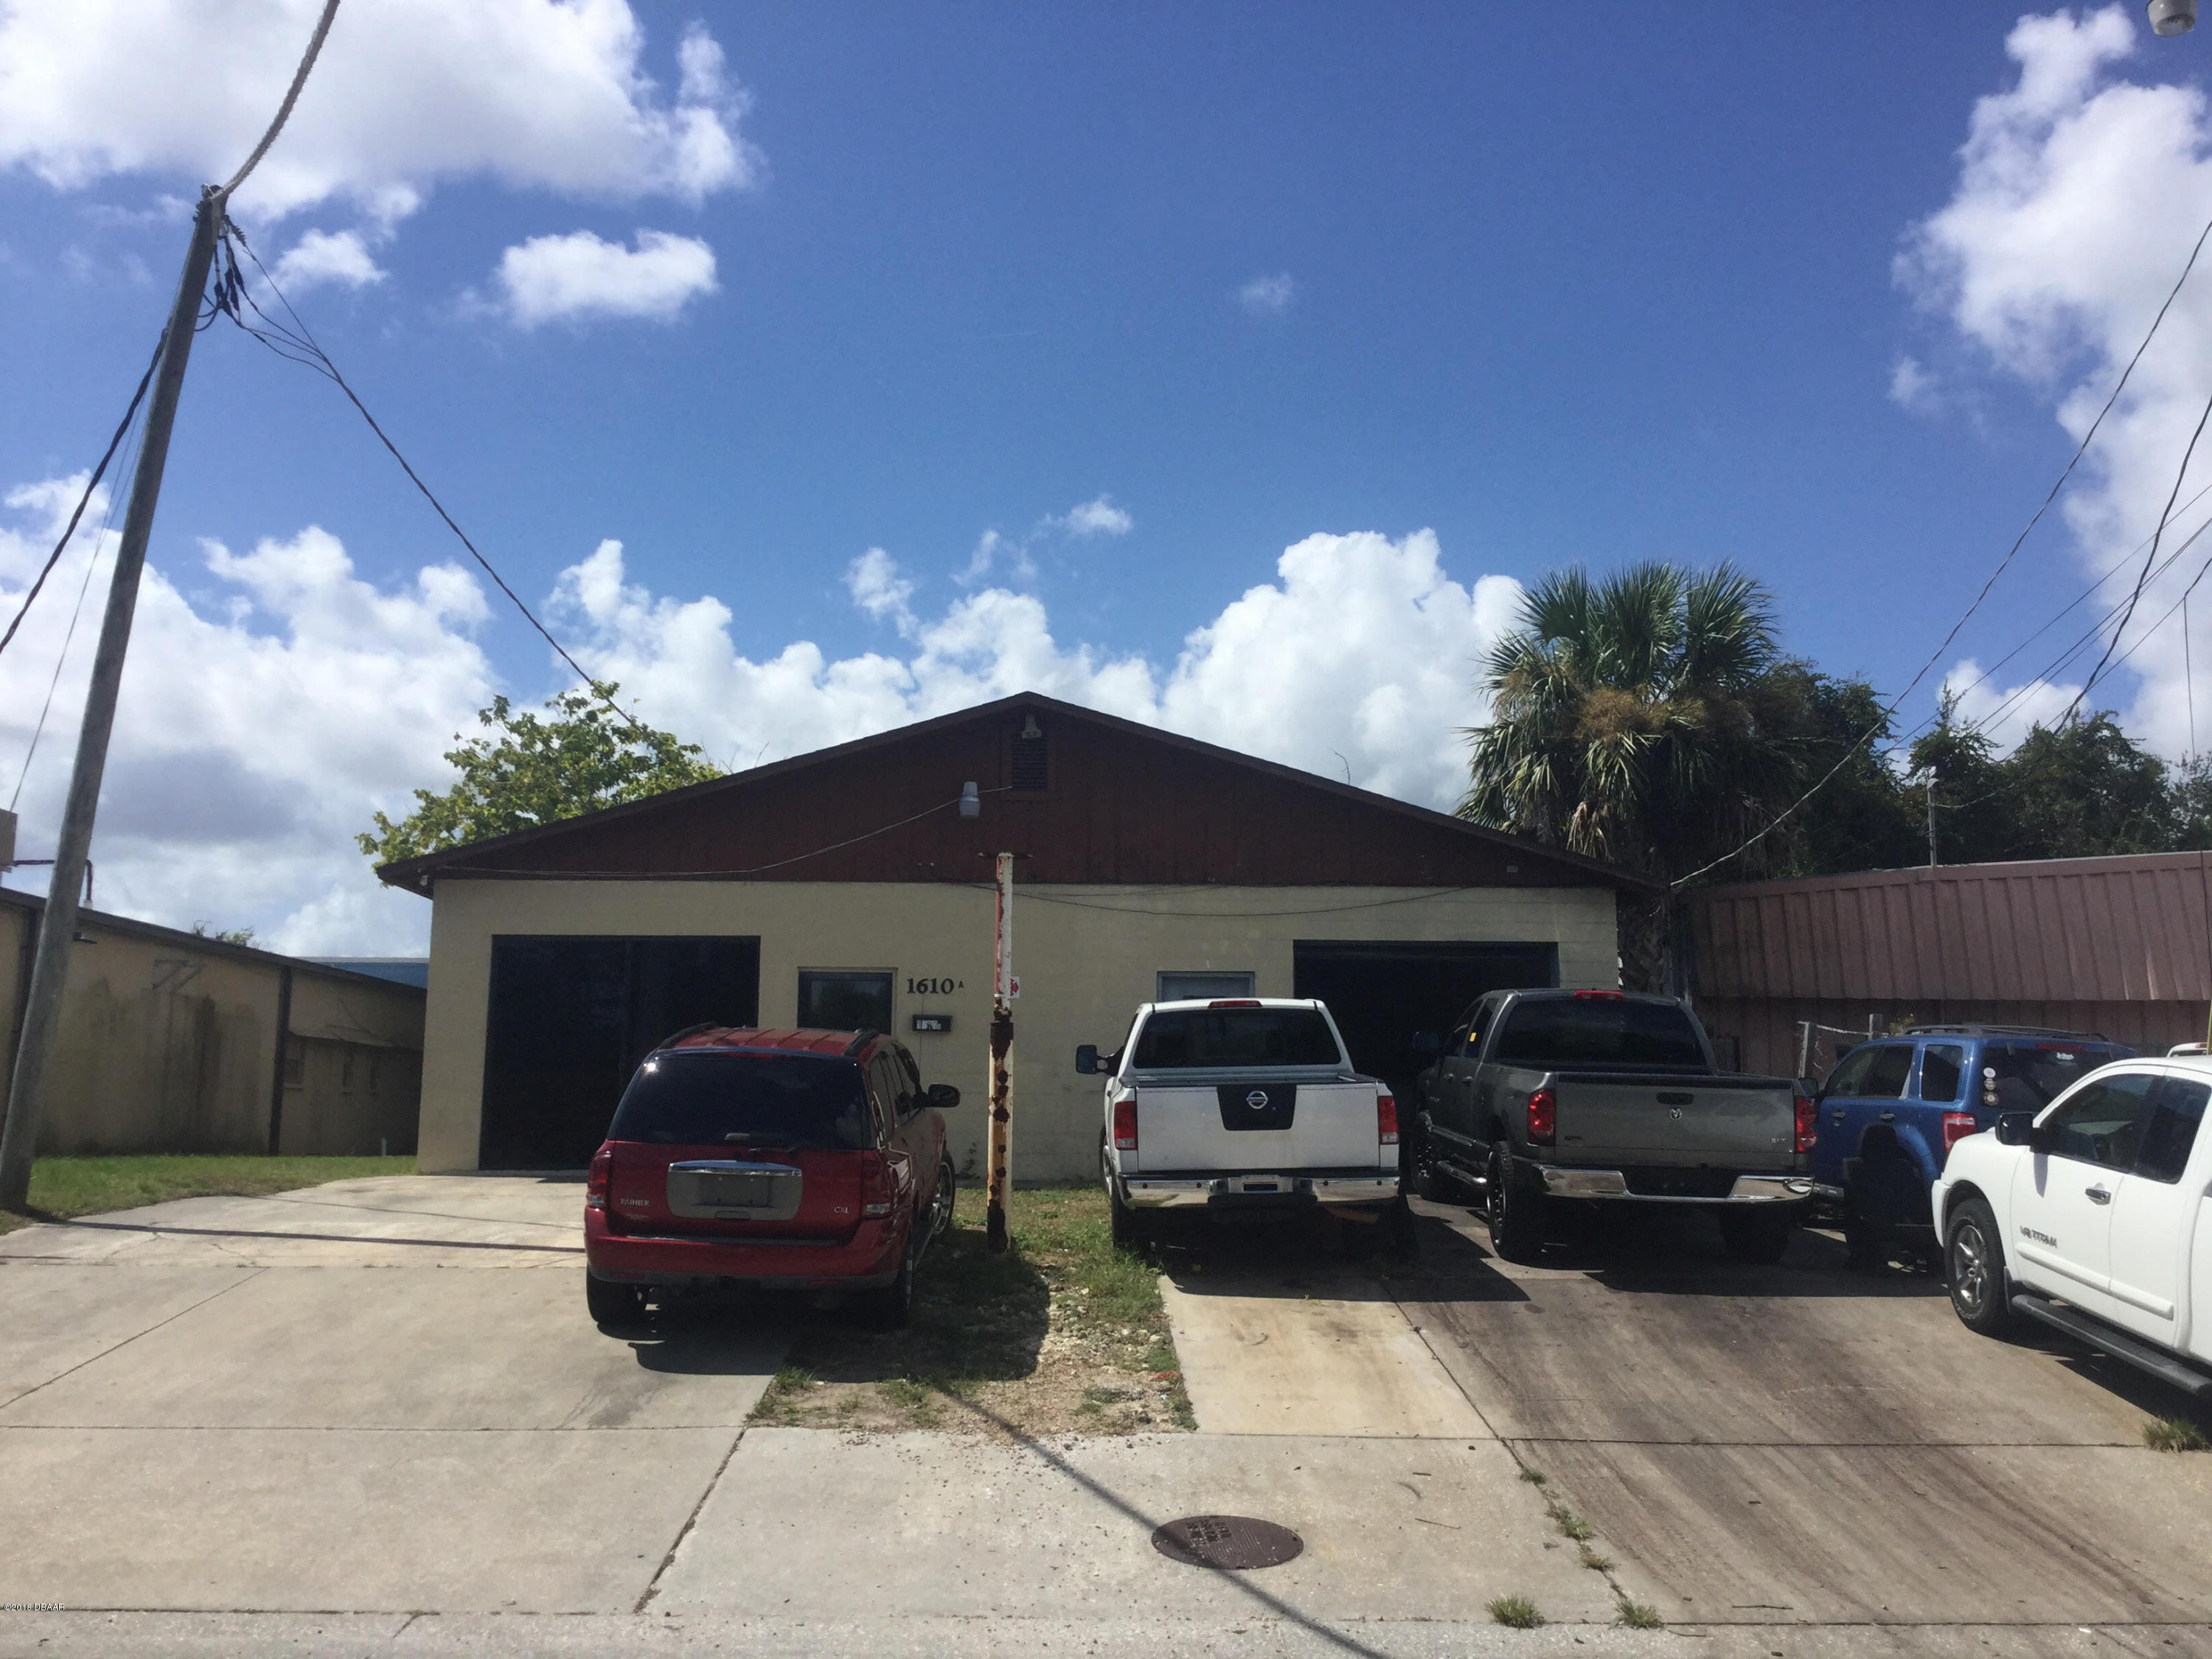 Photo of 1610 Old Kings Road, Daytona Beach, FL 32117